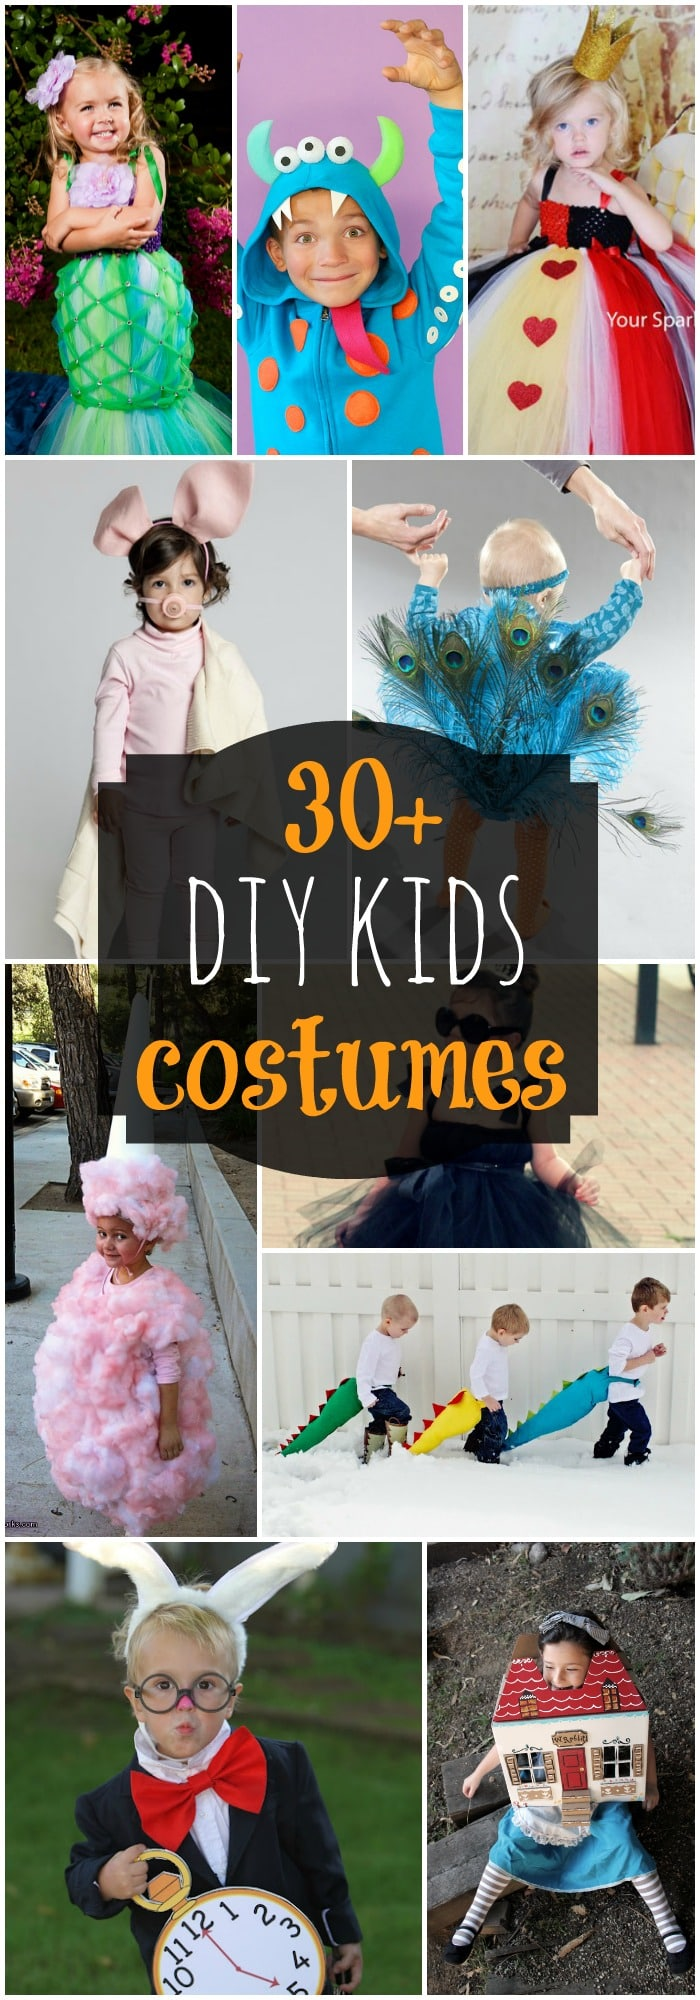 30+ DIY costumes for kids! SO many adorable Halloween costumes that you can make for your kids!! { lilluna.com }